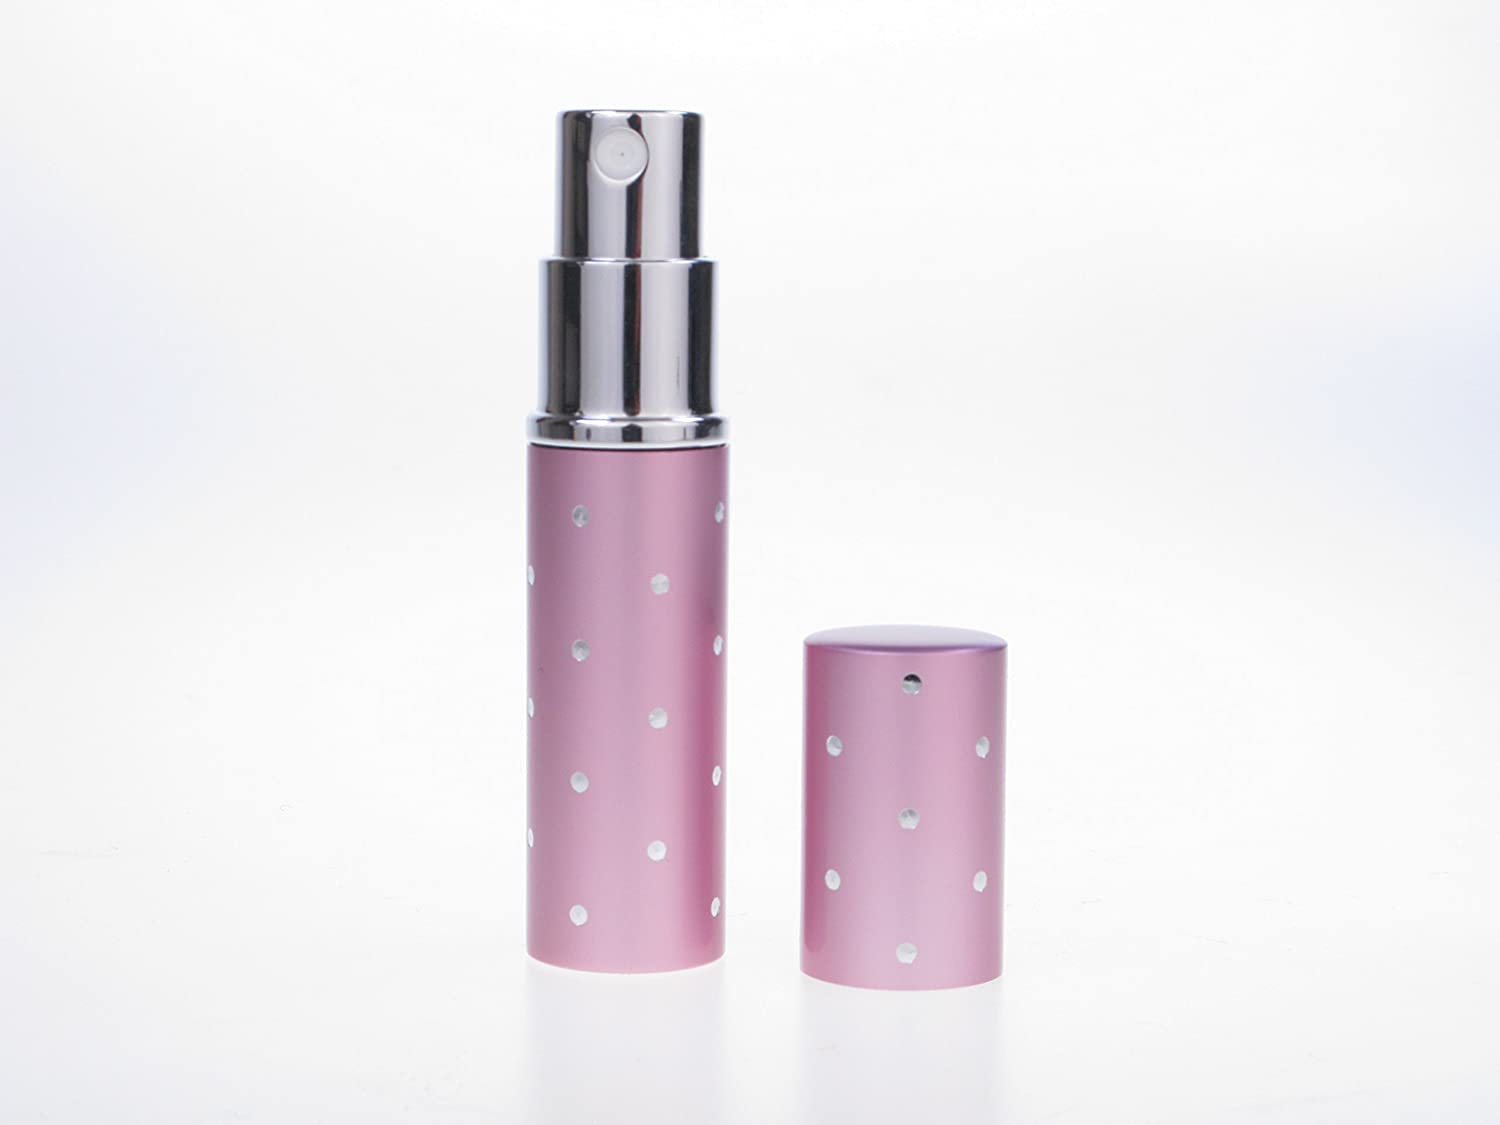 Gift Boxed 5ml Pink Silver Dot Perfume Travel Atomizer for Handbag. Refillable, includes Funnel